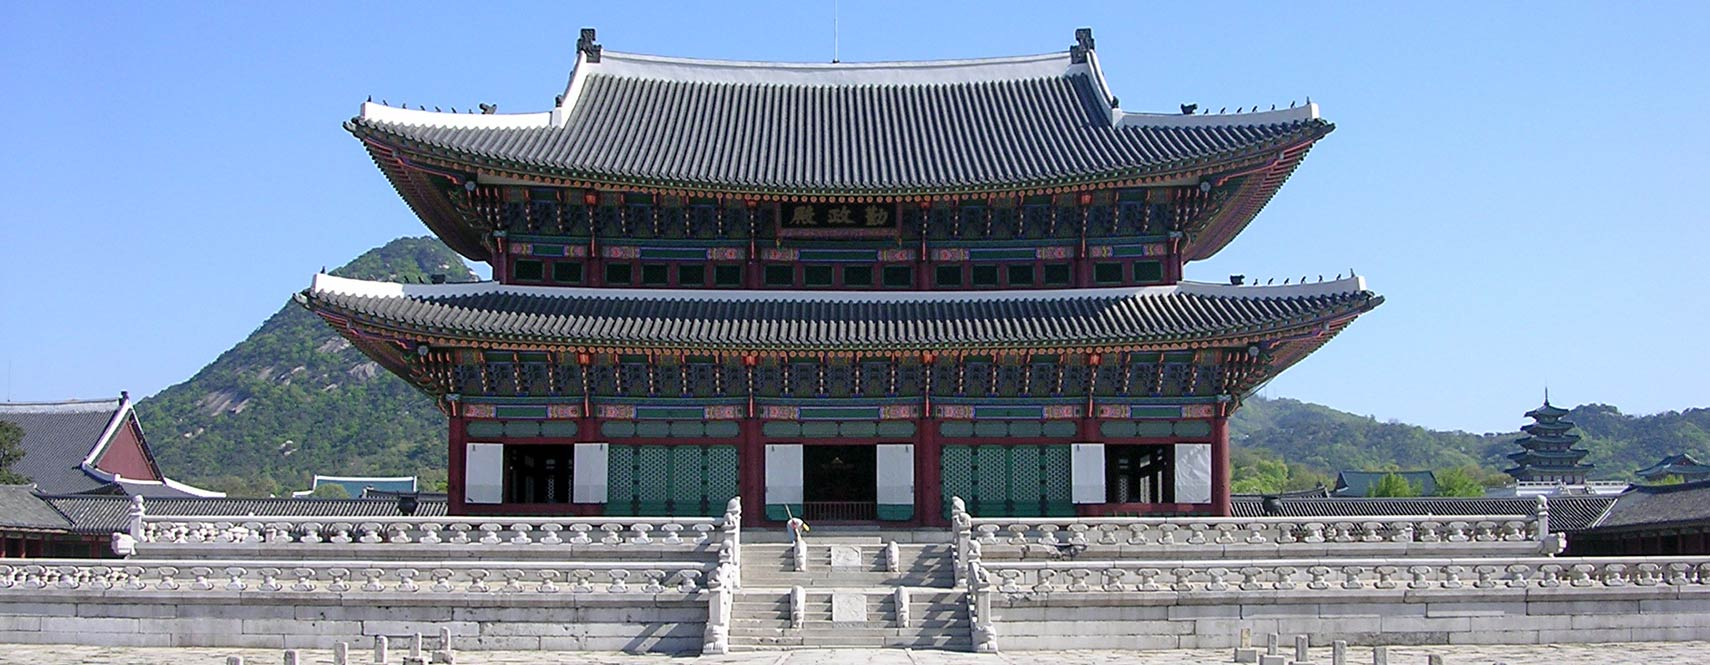 Gyeongbokgung royal palace in Seoul, South Korea